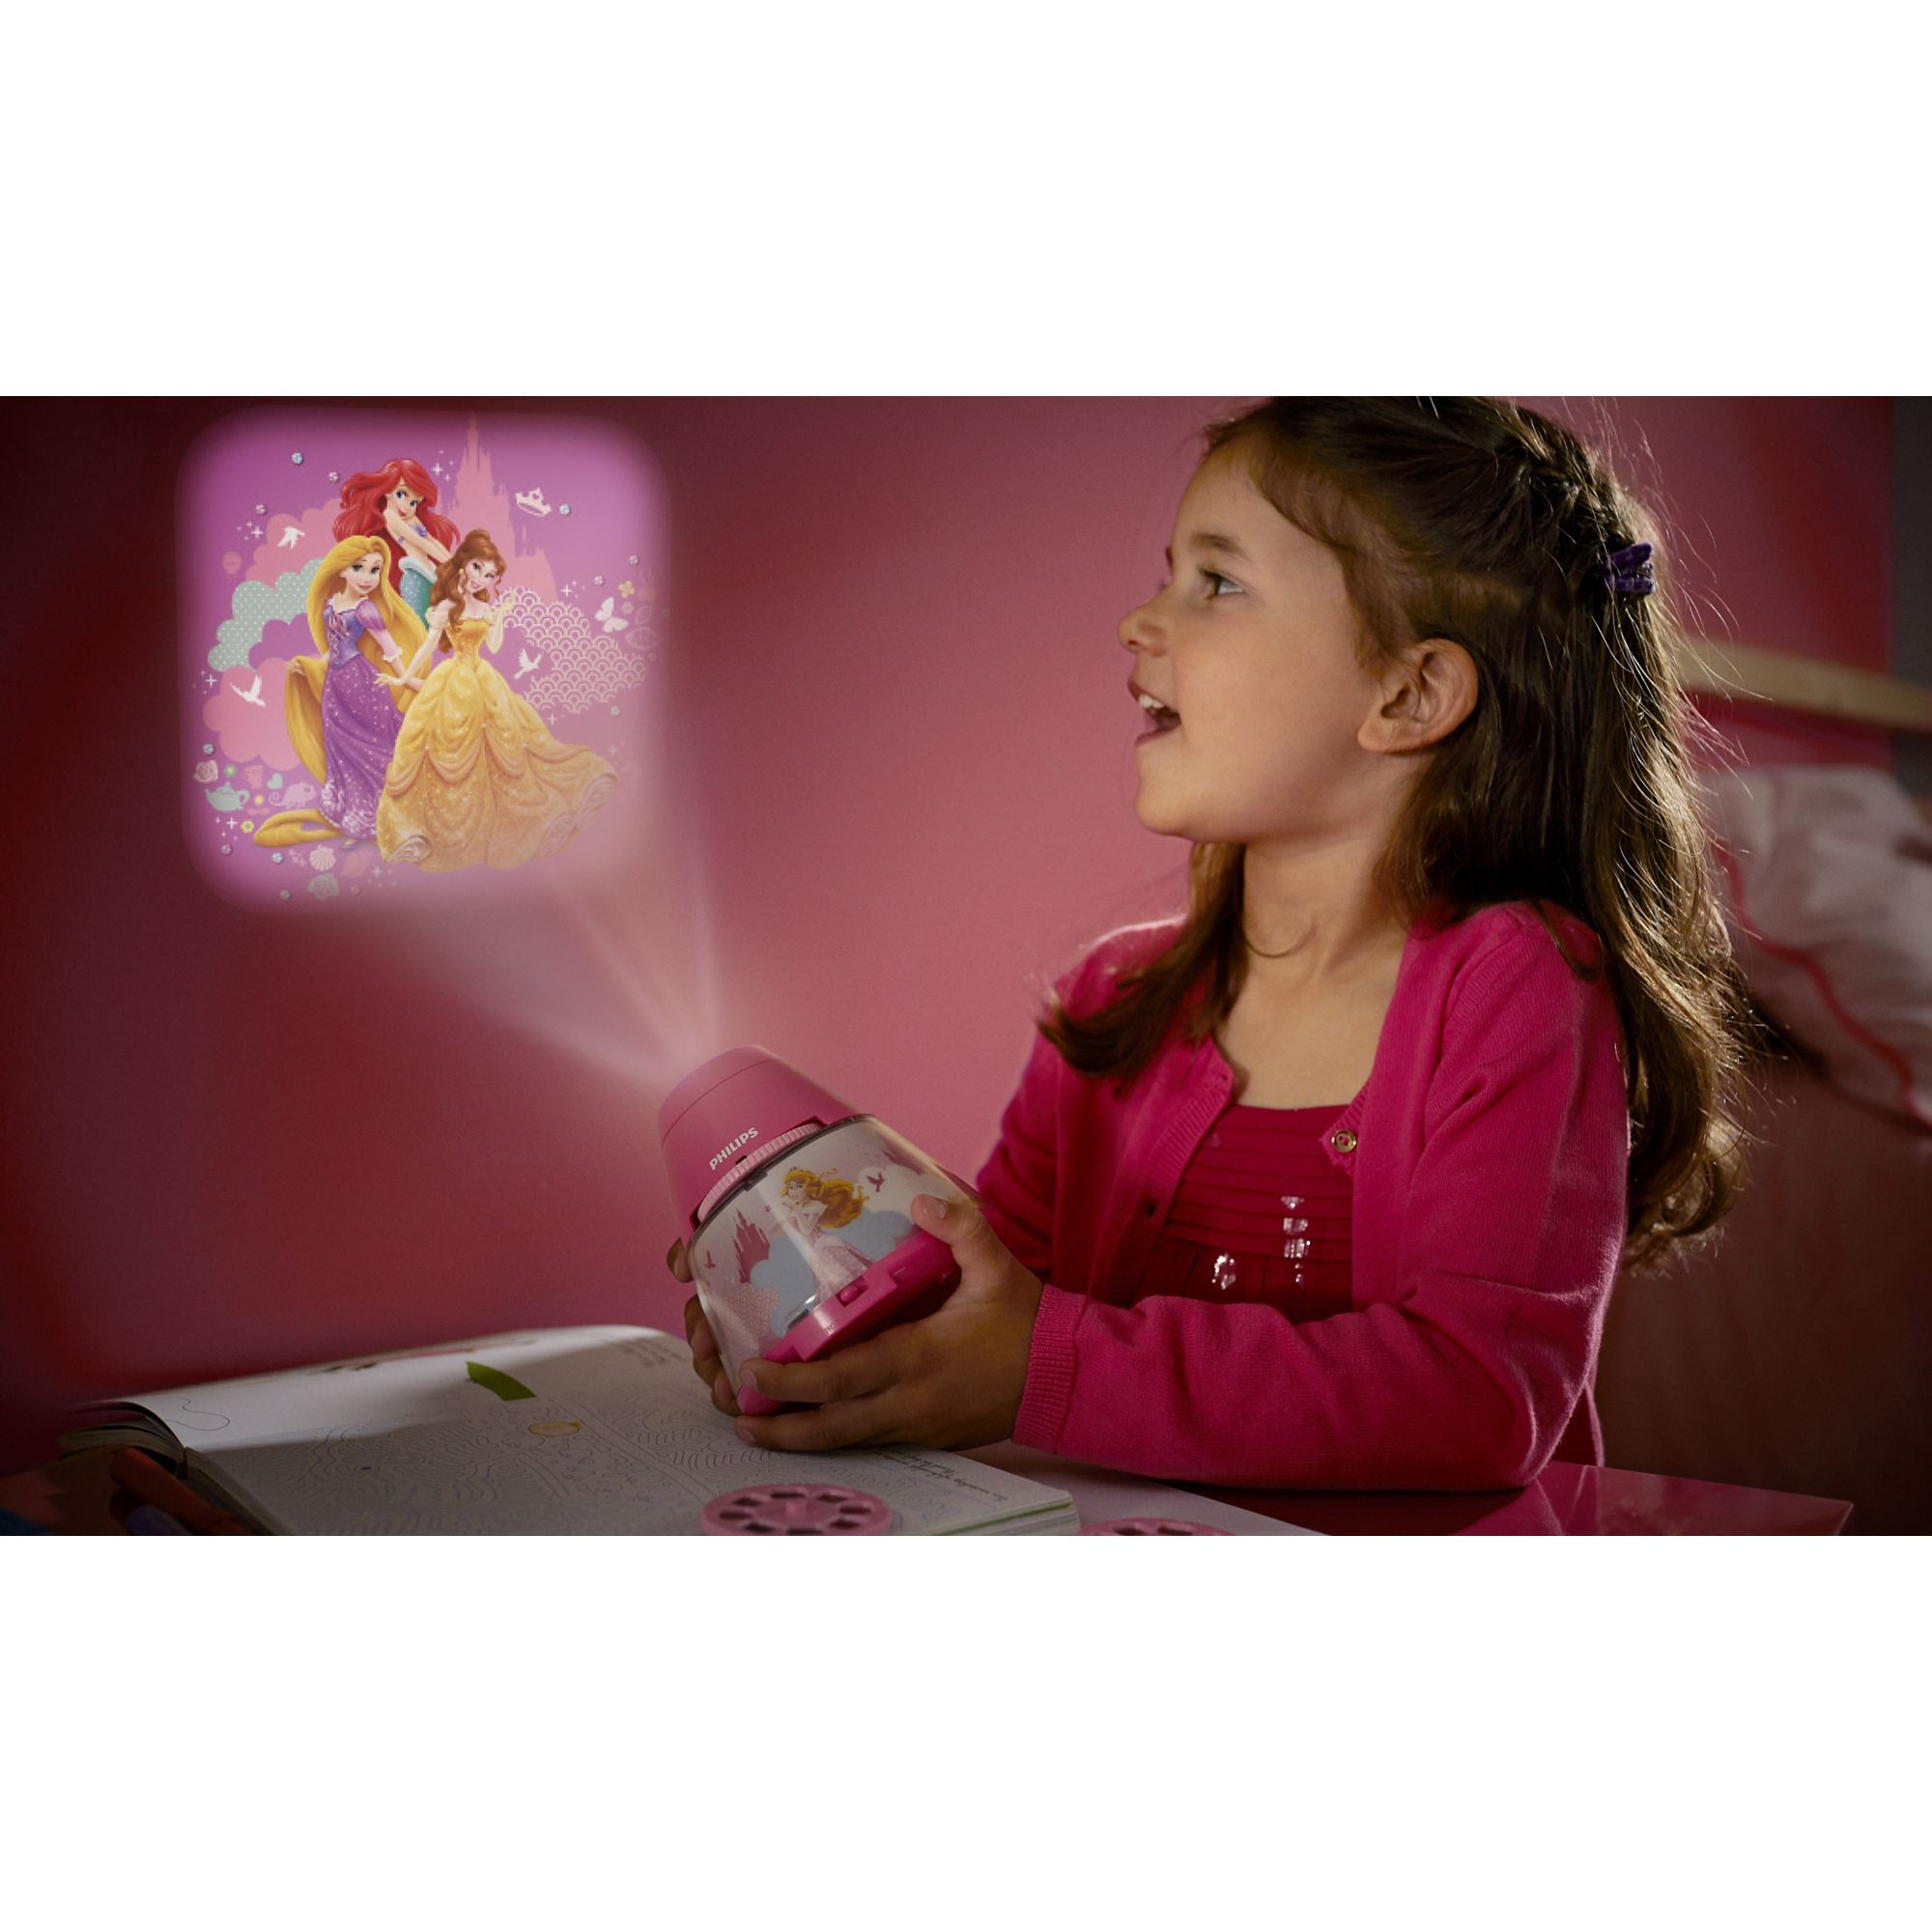 Philips Disney Princess children's LED night light projector portable battery Thumbnail 2